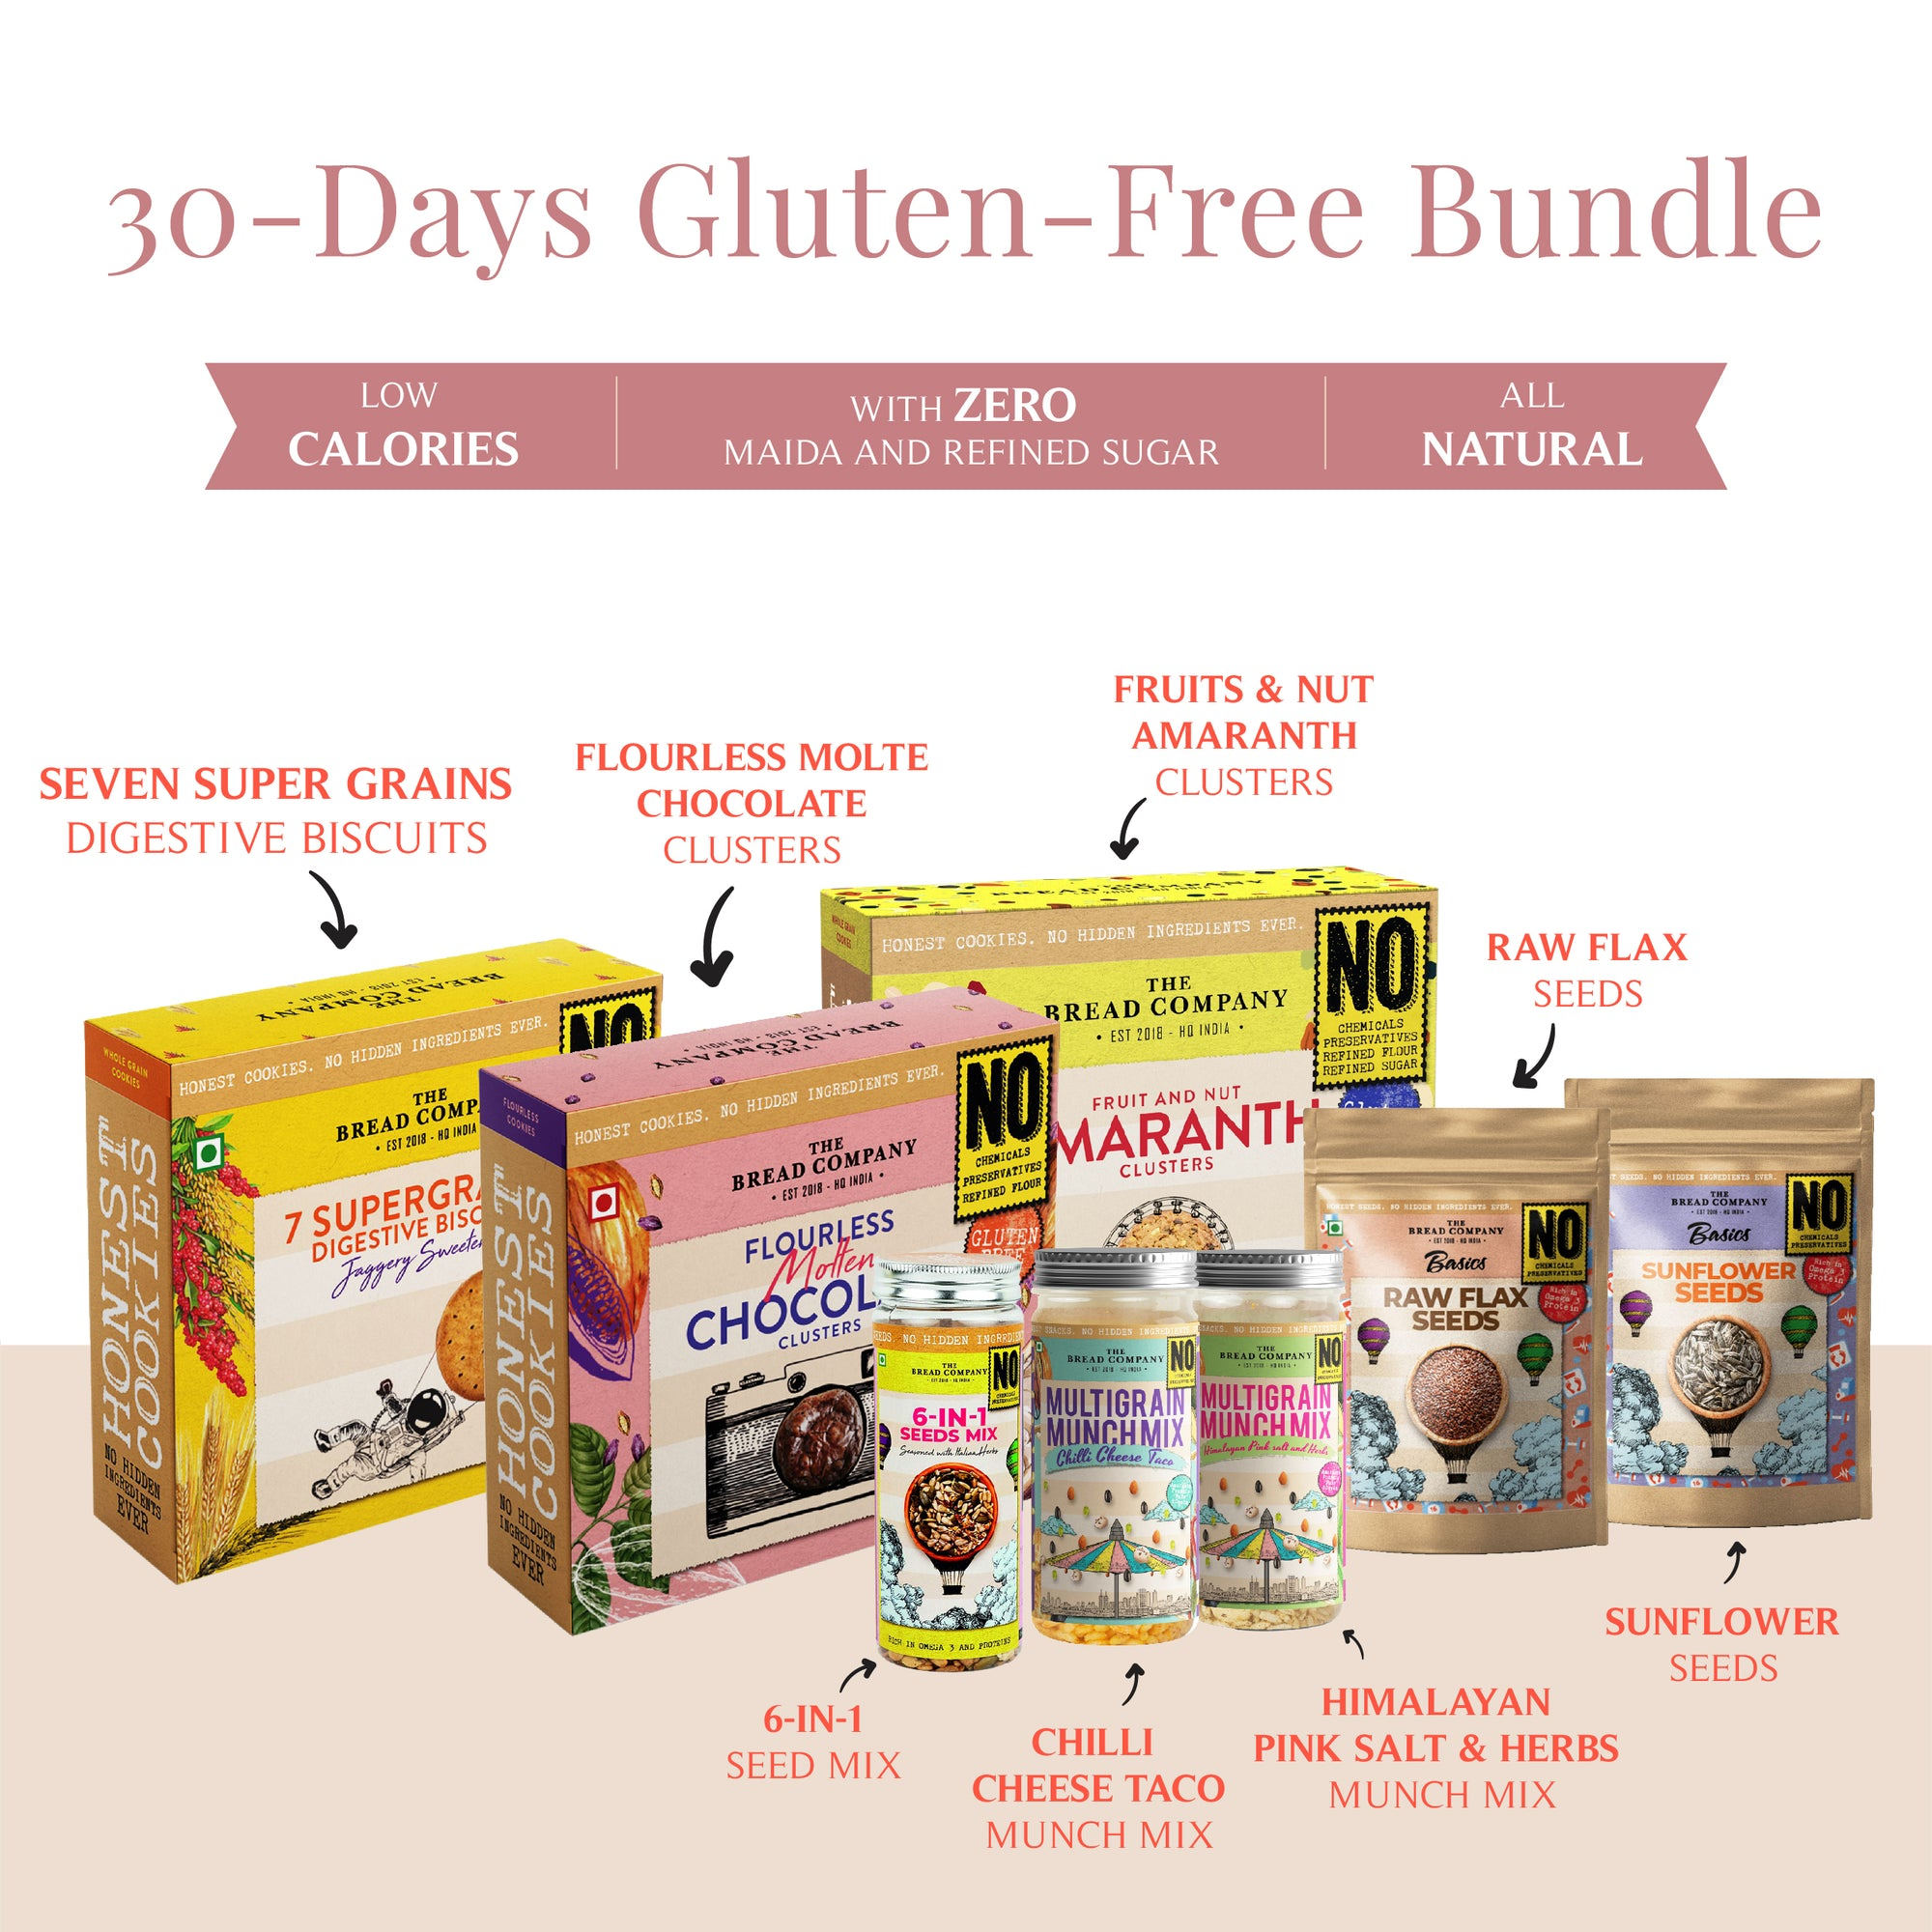 30-Day Gluten-Free Challenge bundle